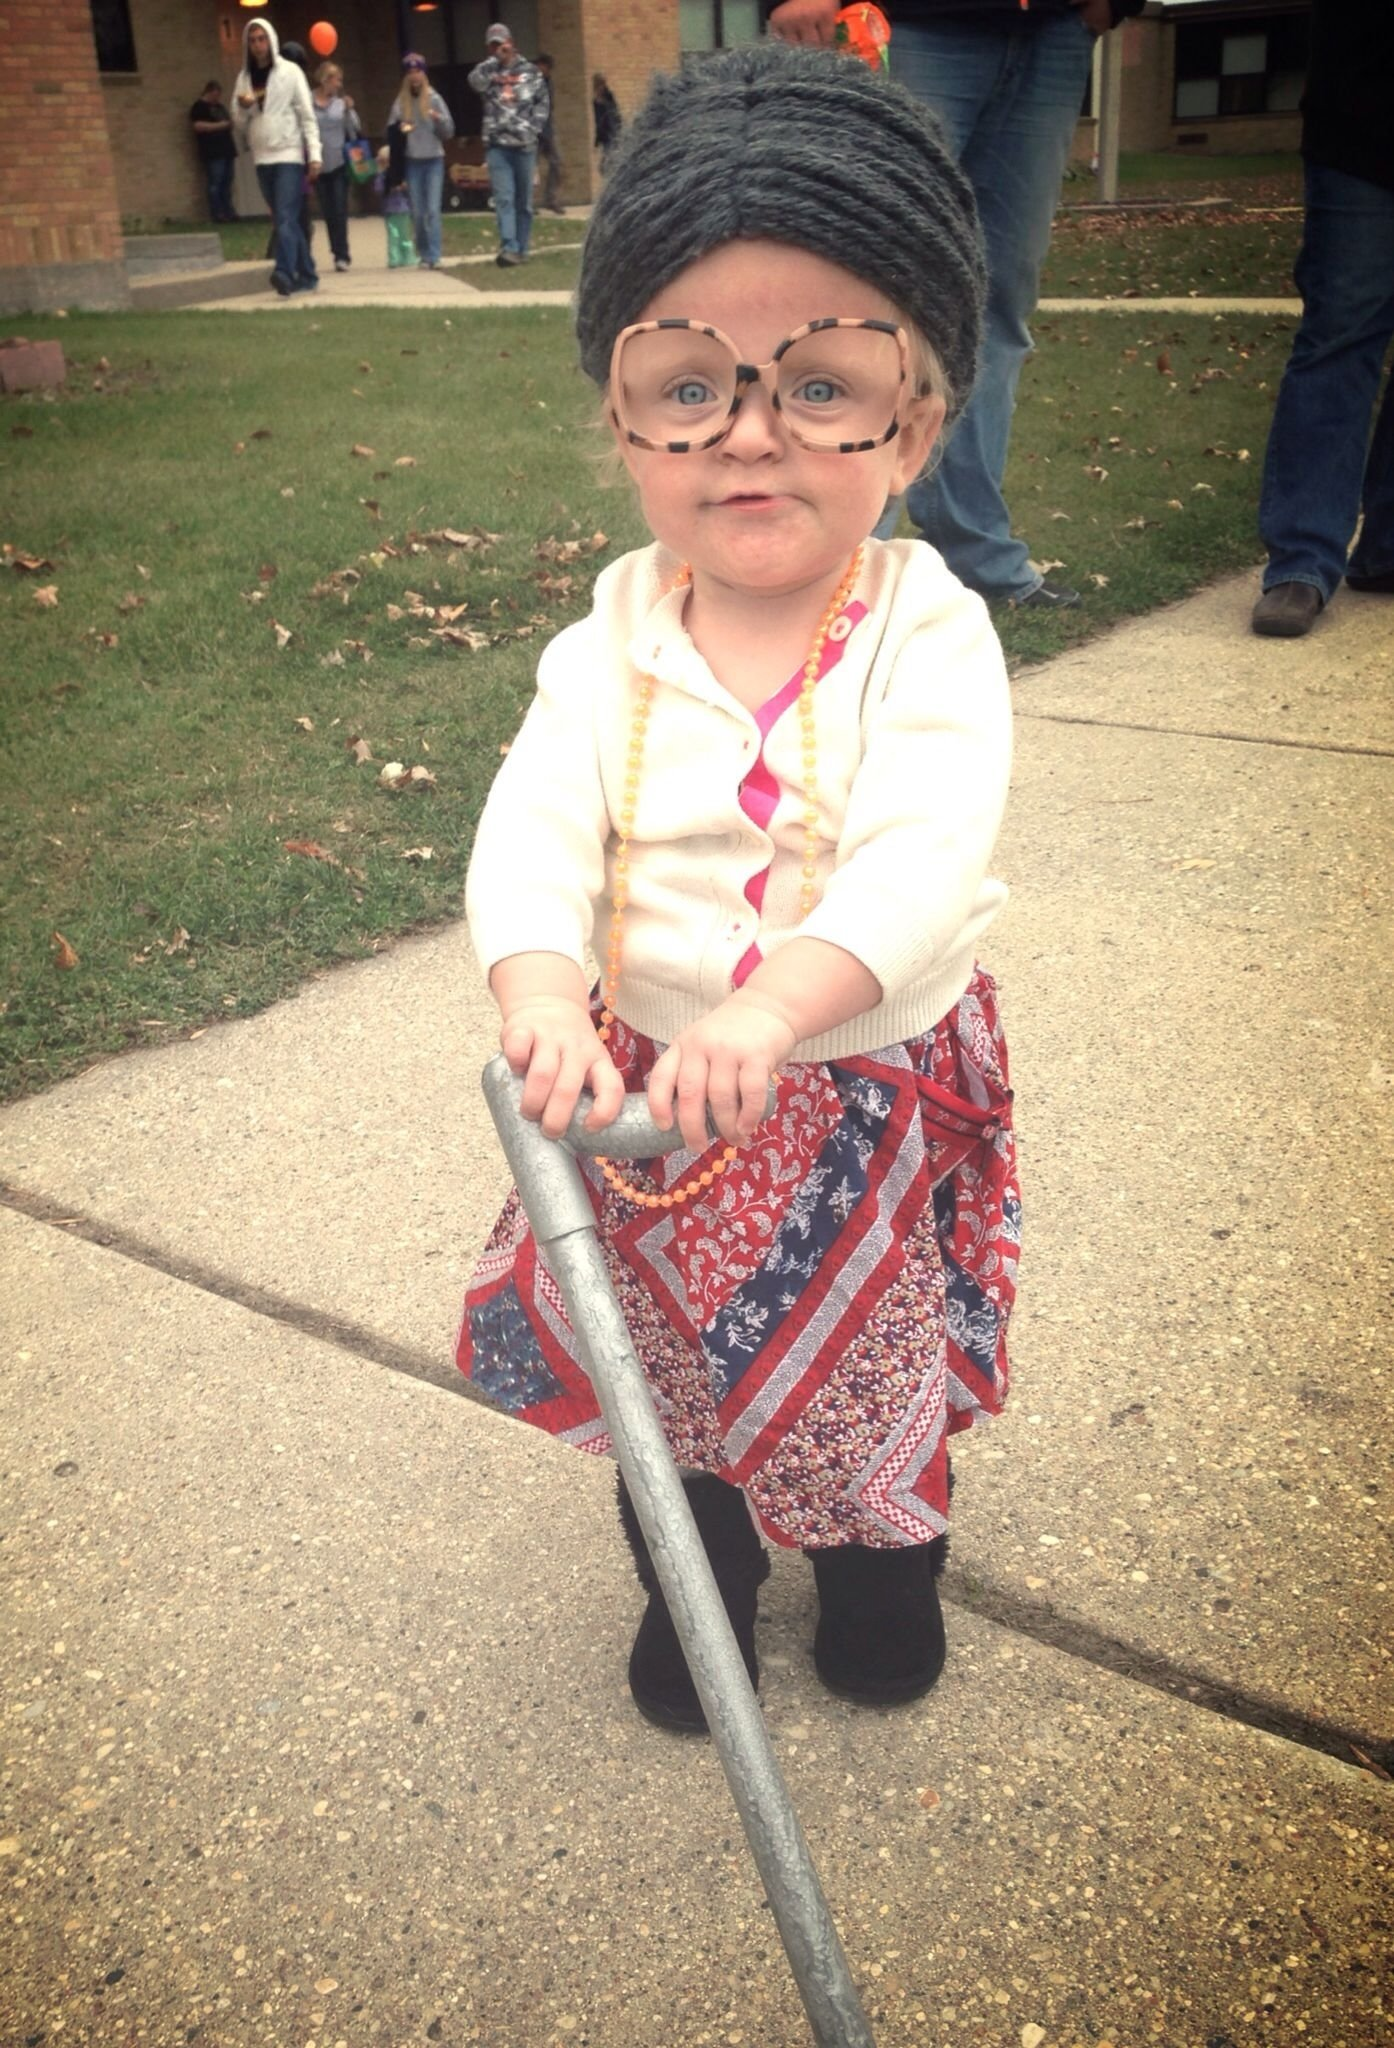 10 Most Popular Homemade Toddler Halloween Costume Ideas old lady easy diy toddler halloween costume for nora pinterest 2021